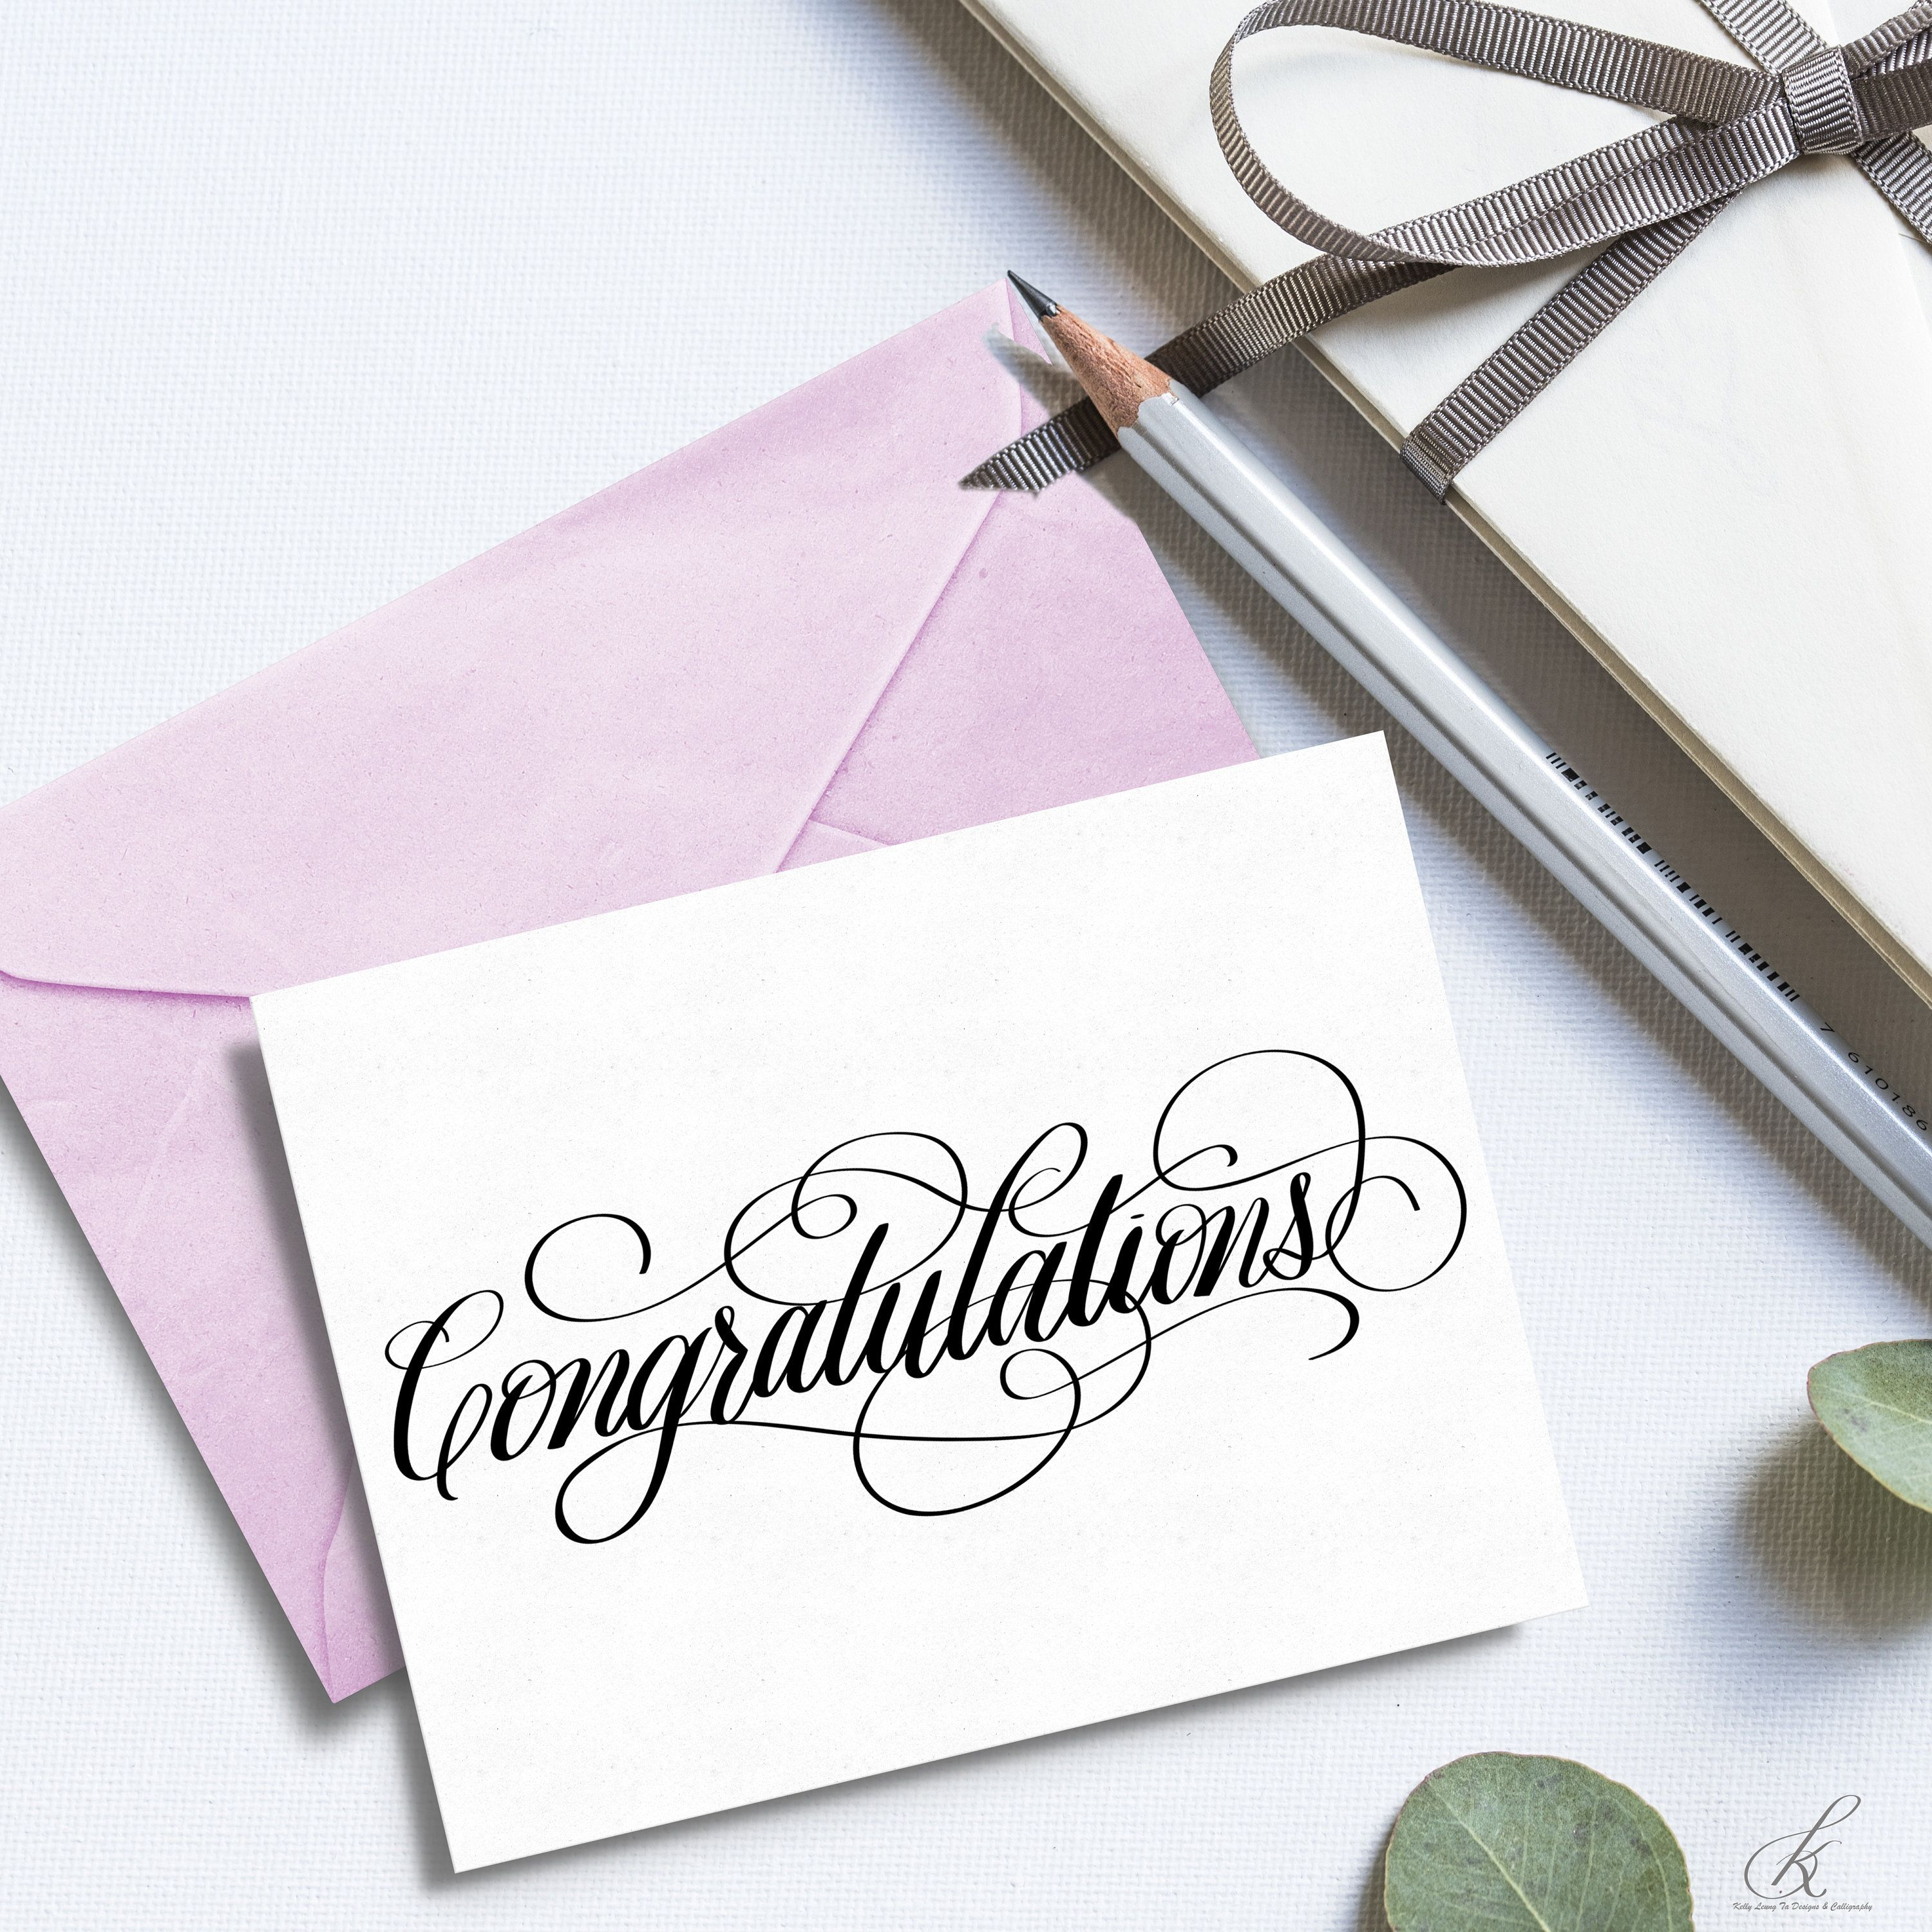 Congrats Greeting Downloadable Print Your Own Card Graduation